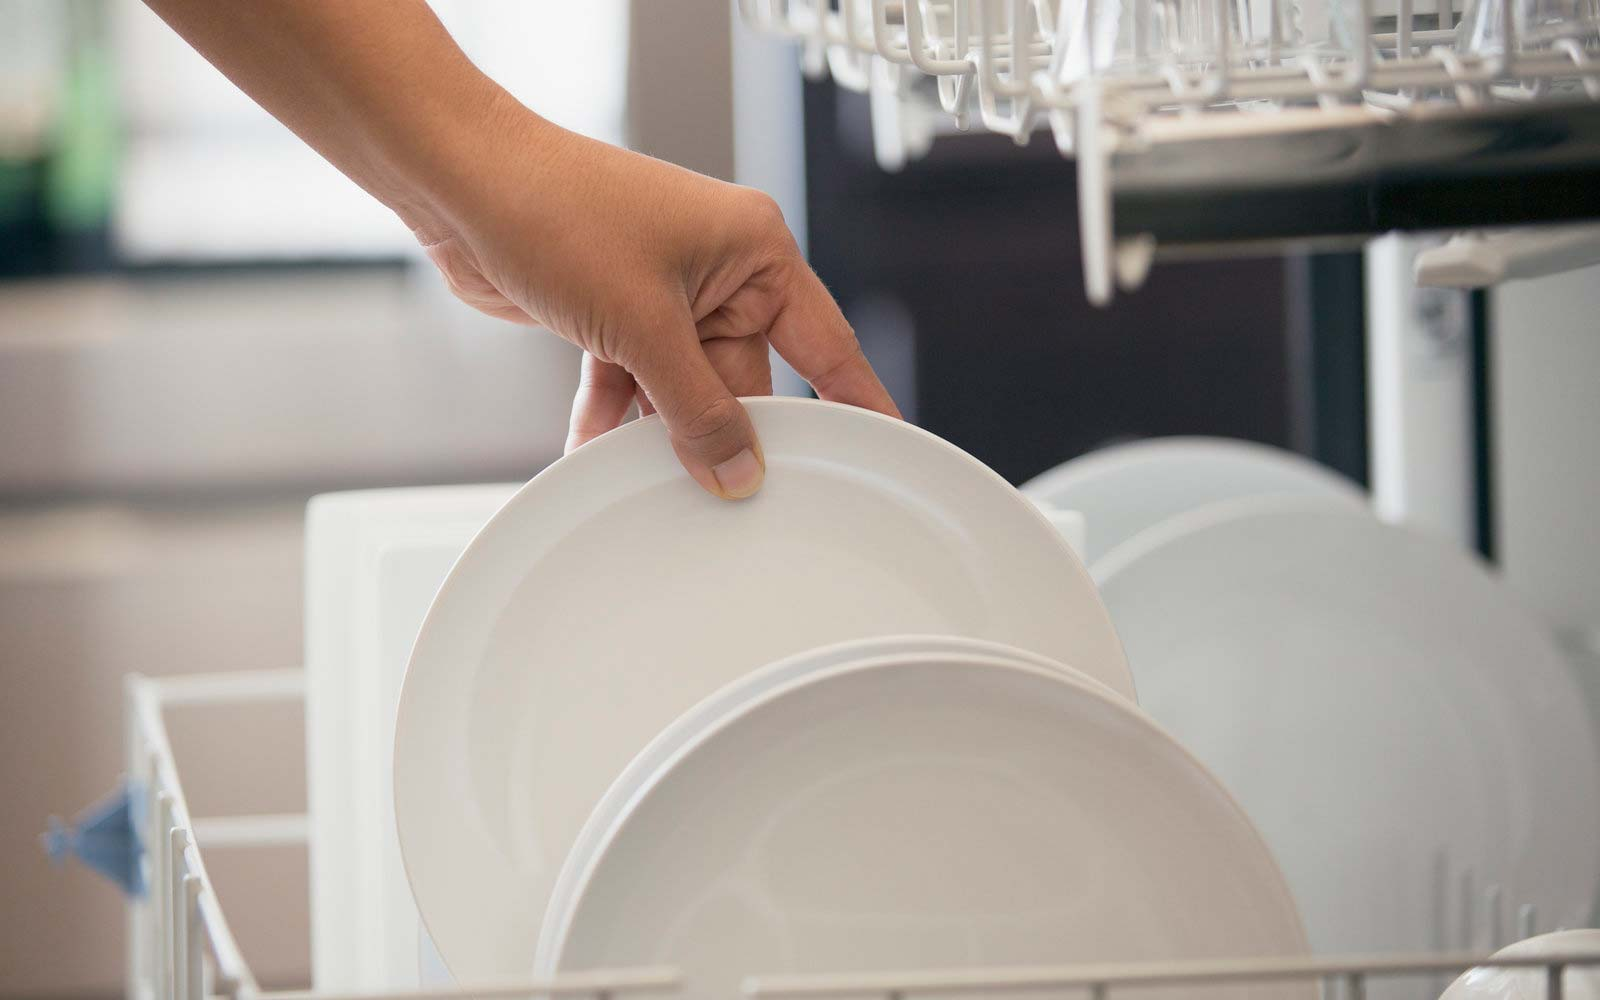 Why You Should Stop Rinsing Your Dishes Before You Put Them in the Dishwasher